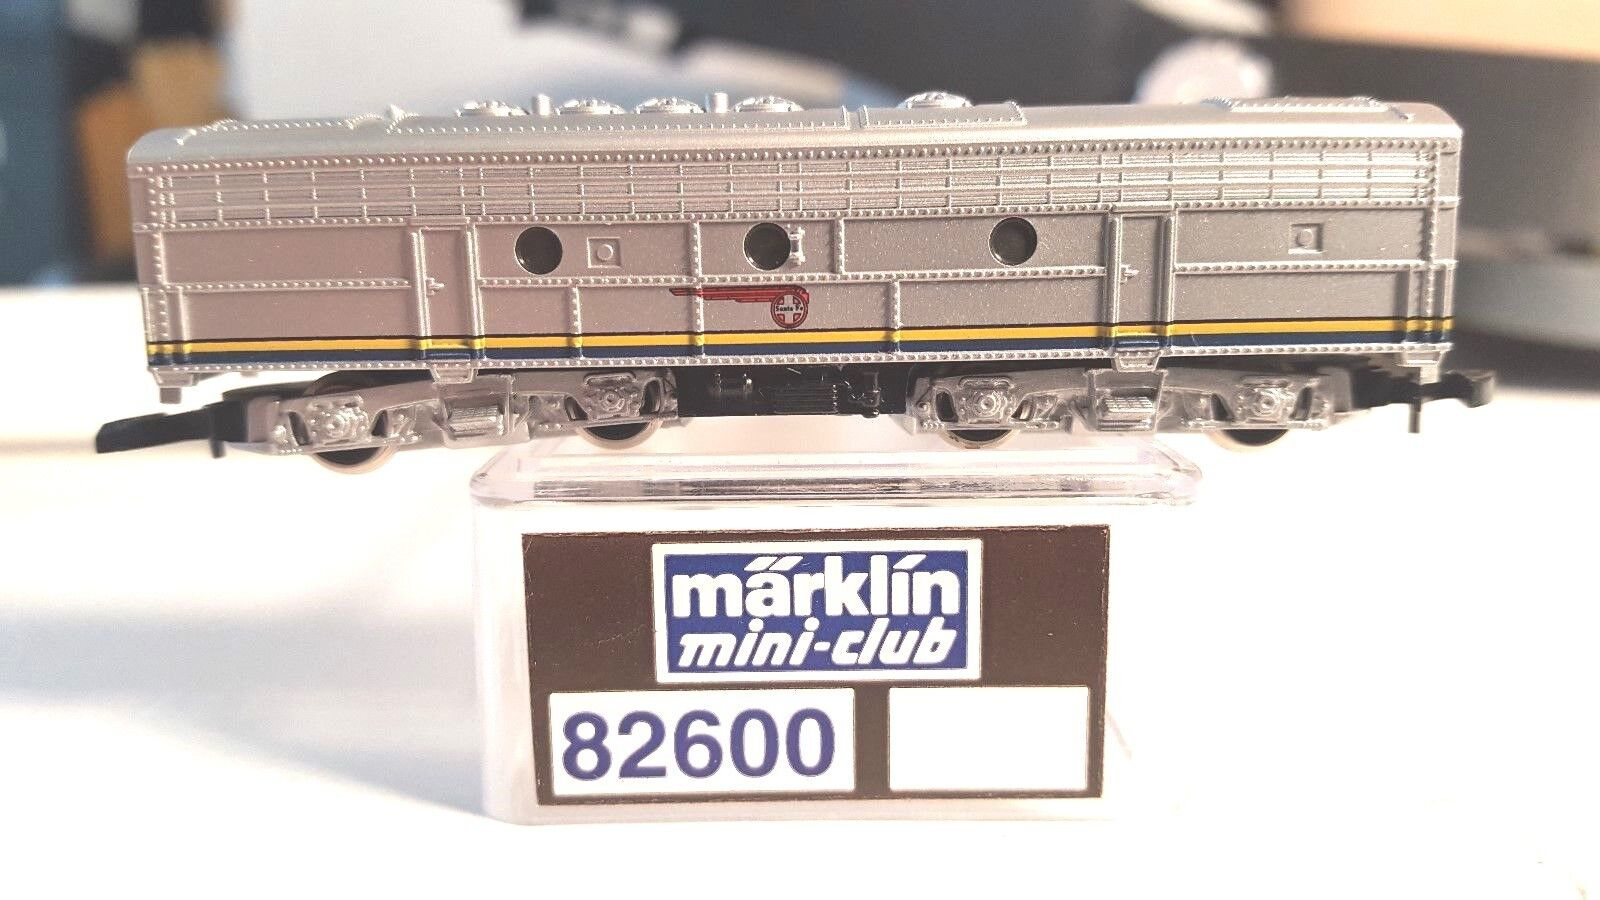 Marklin Z Mini Club Club Club 82600 EMD F7 B-Unit ATSF Loco bluee Warbonnet Non-Powered 6e0c18